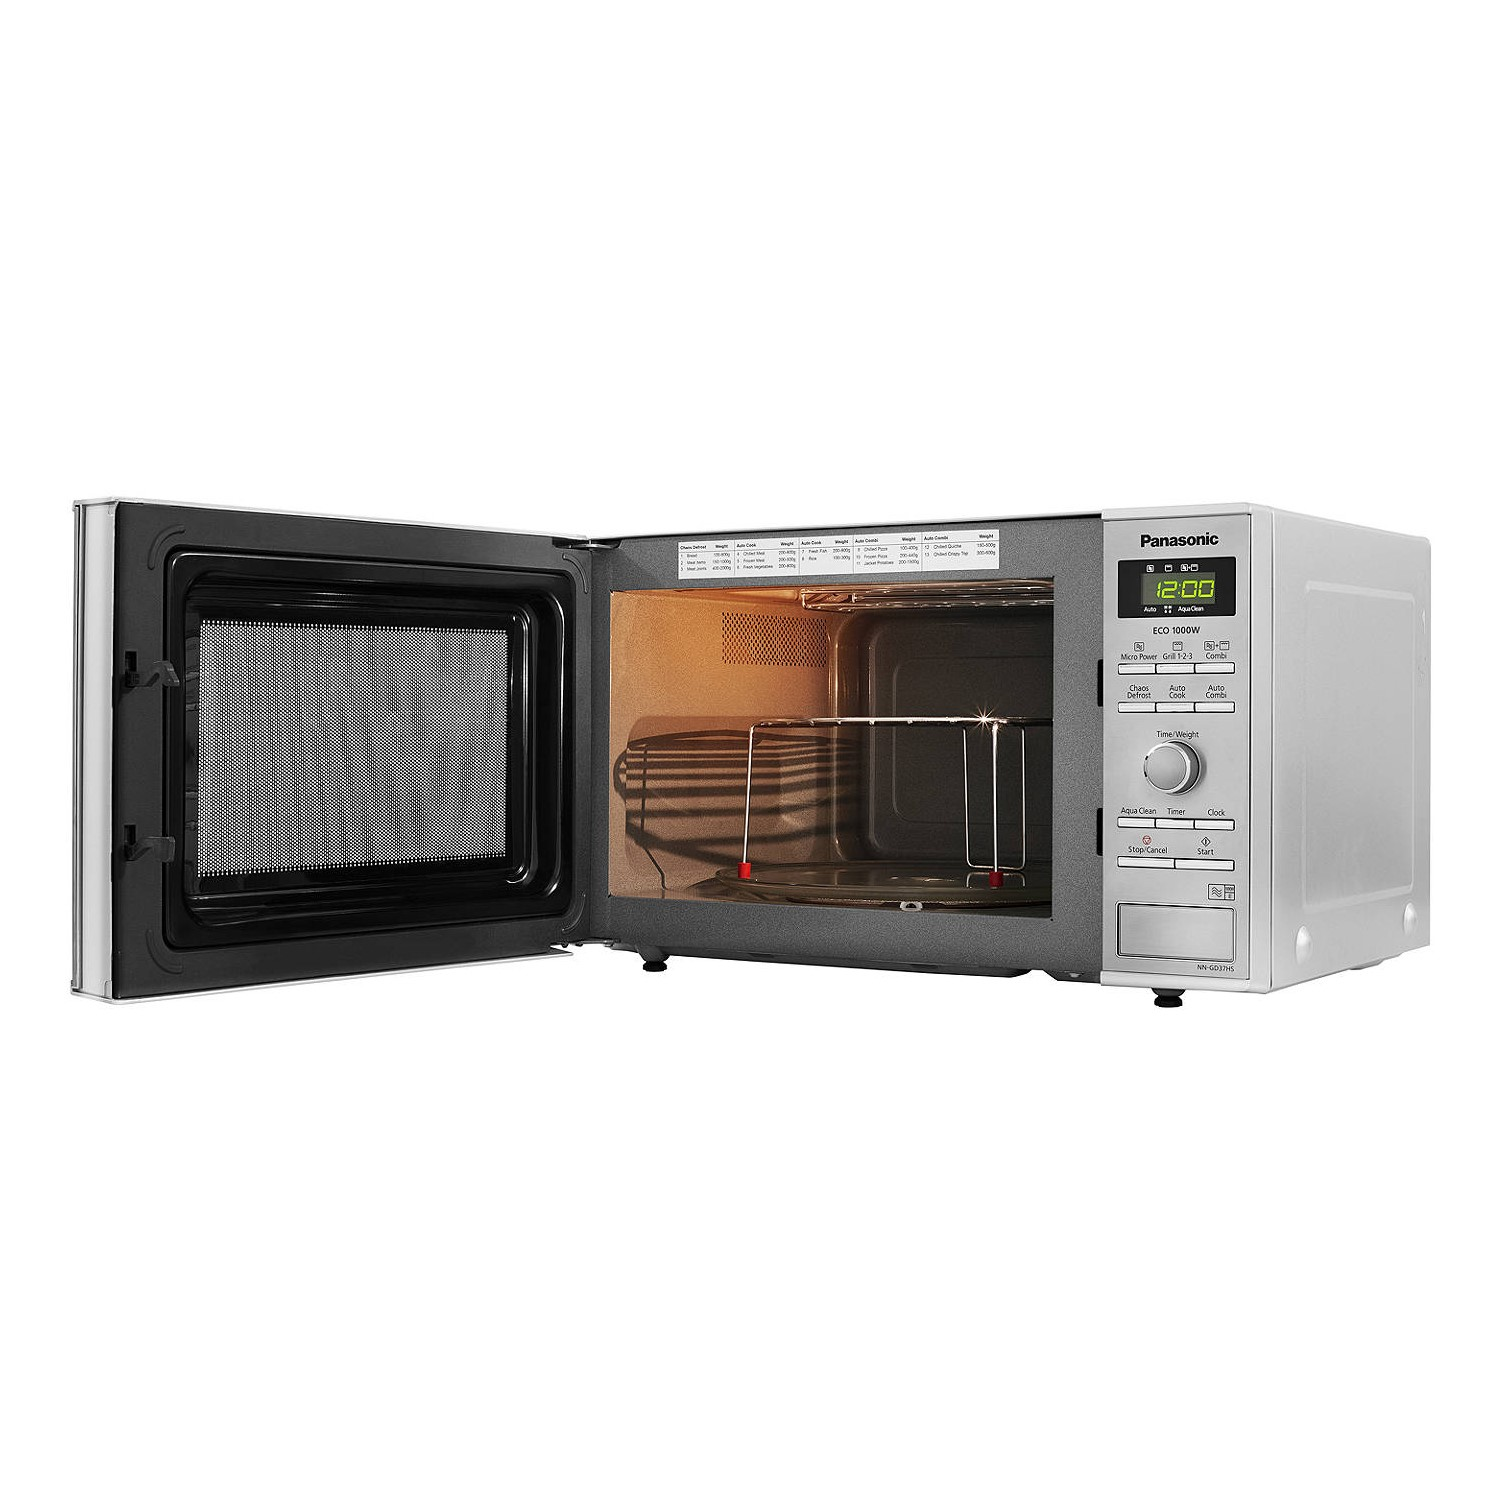 panasonic nn gd37hsbpq 23l inverter microwave and grill stainless steel